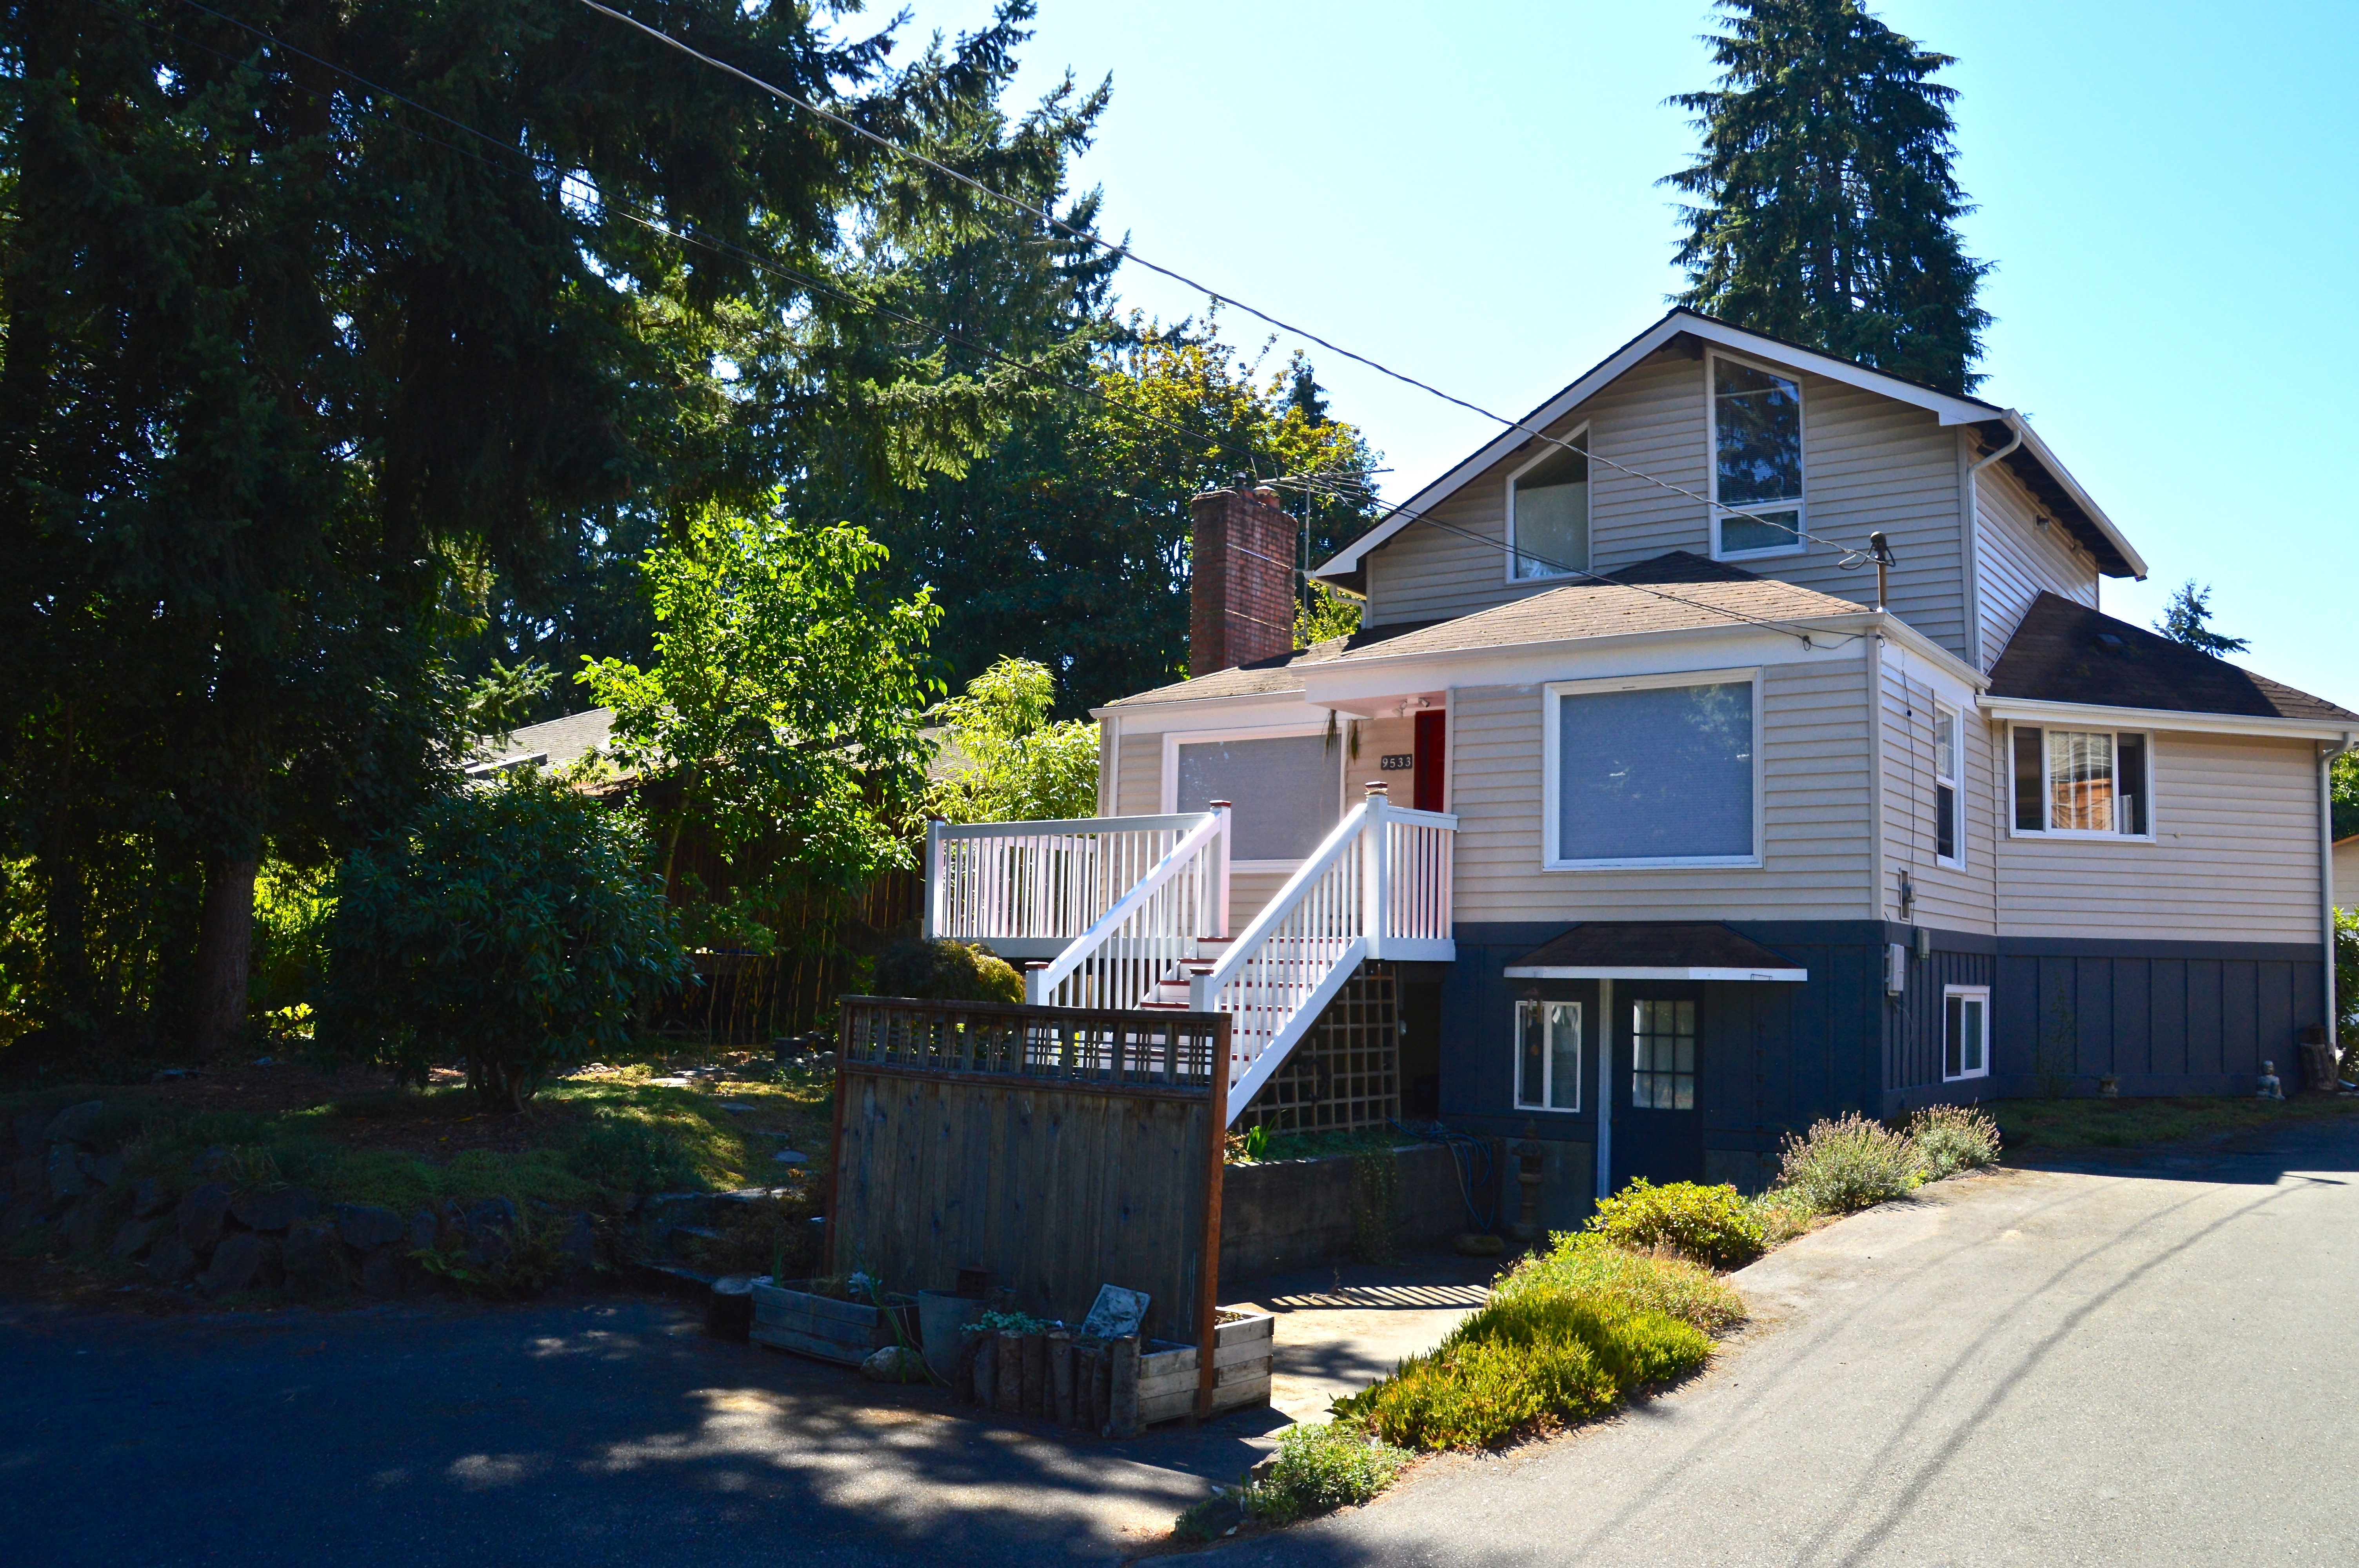 9533 49th Ave Ne Seattle Wa 98115 3 Bedroom Apartment For Rent Padmapper